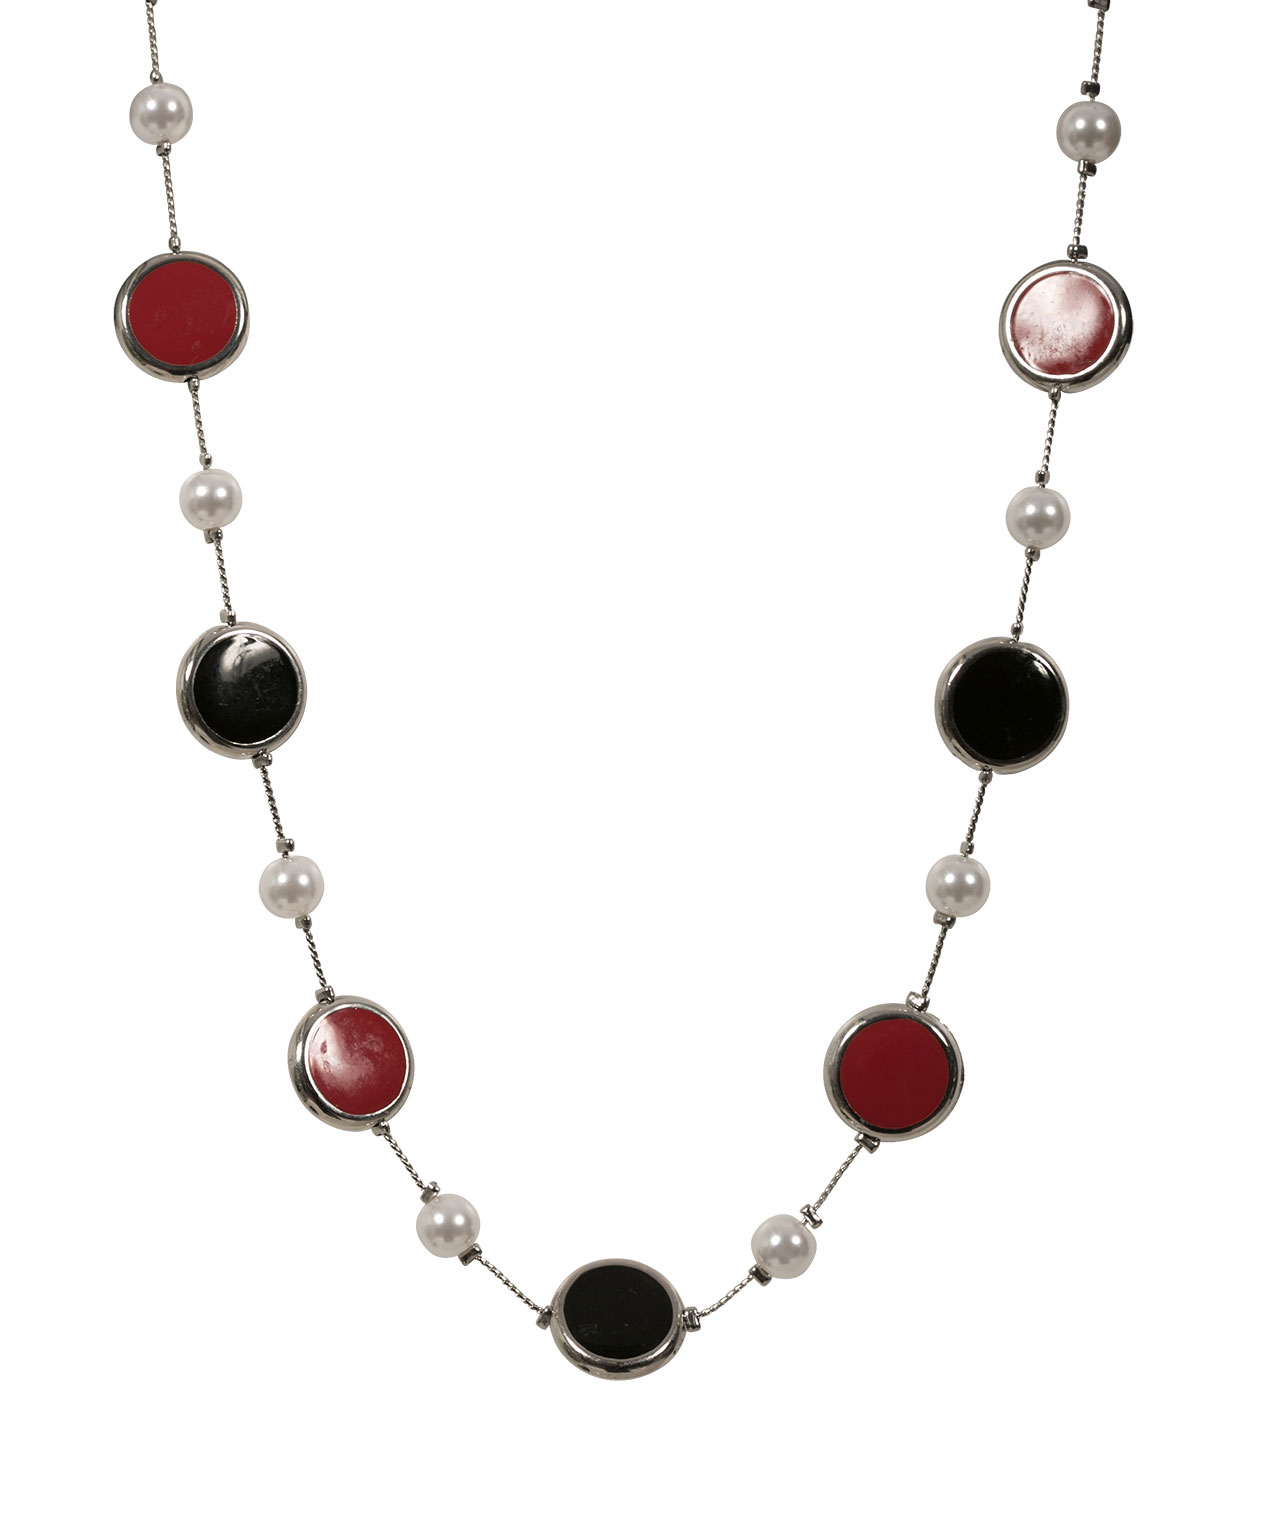 jade crimson necklace jewelry sale clearance